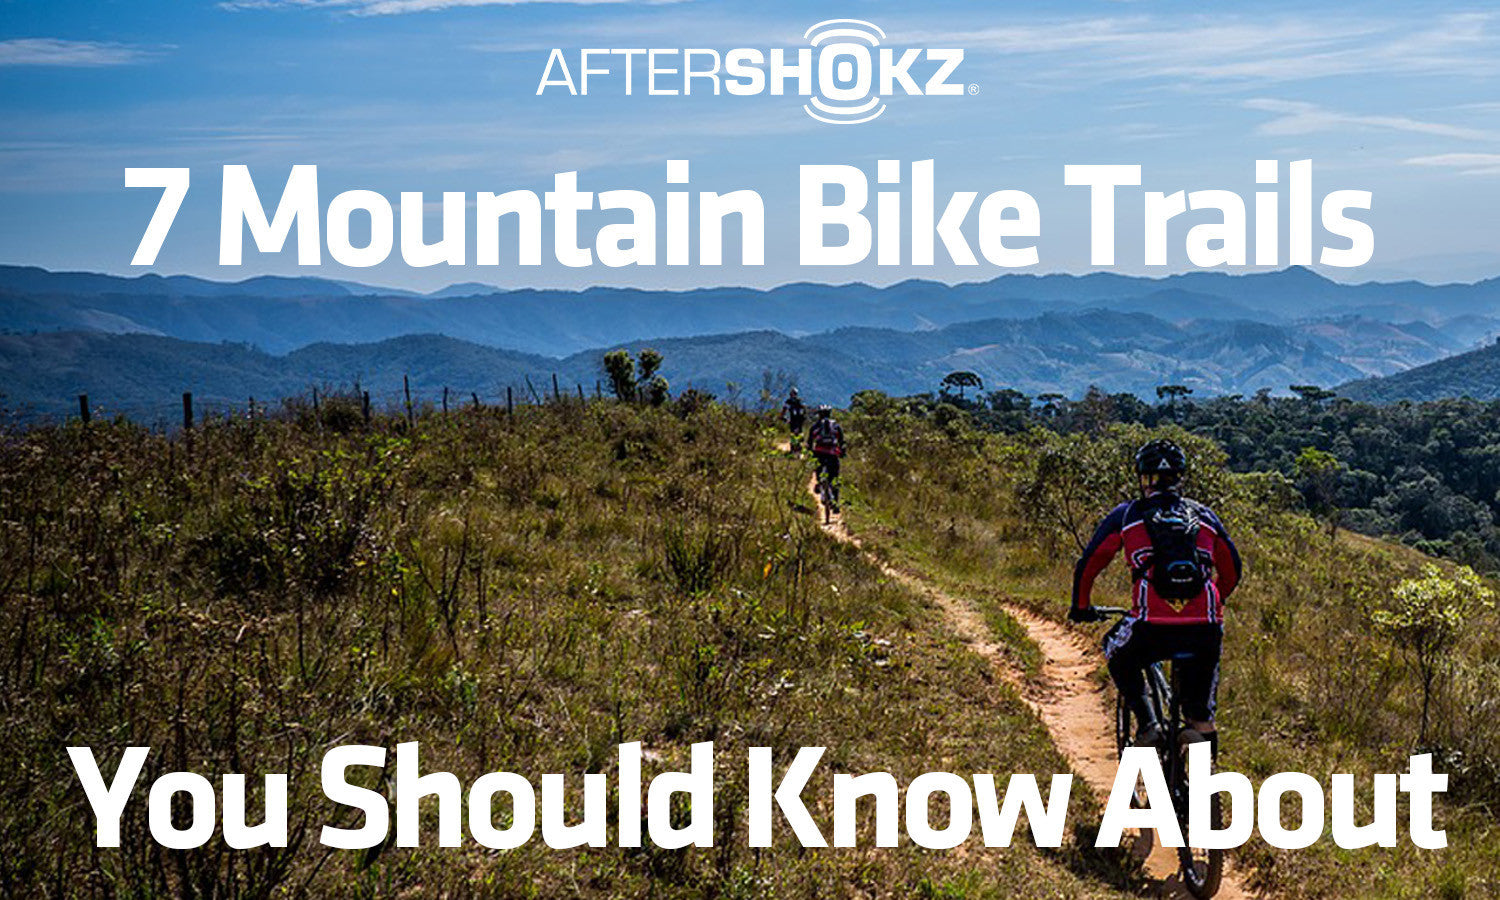 7 Mountain Bike Trails You Should Know About